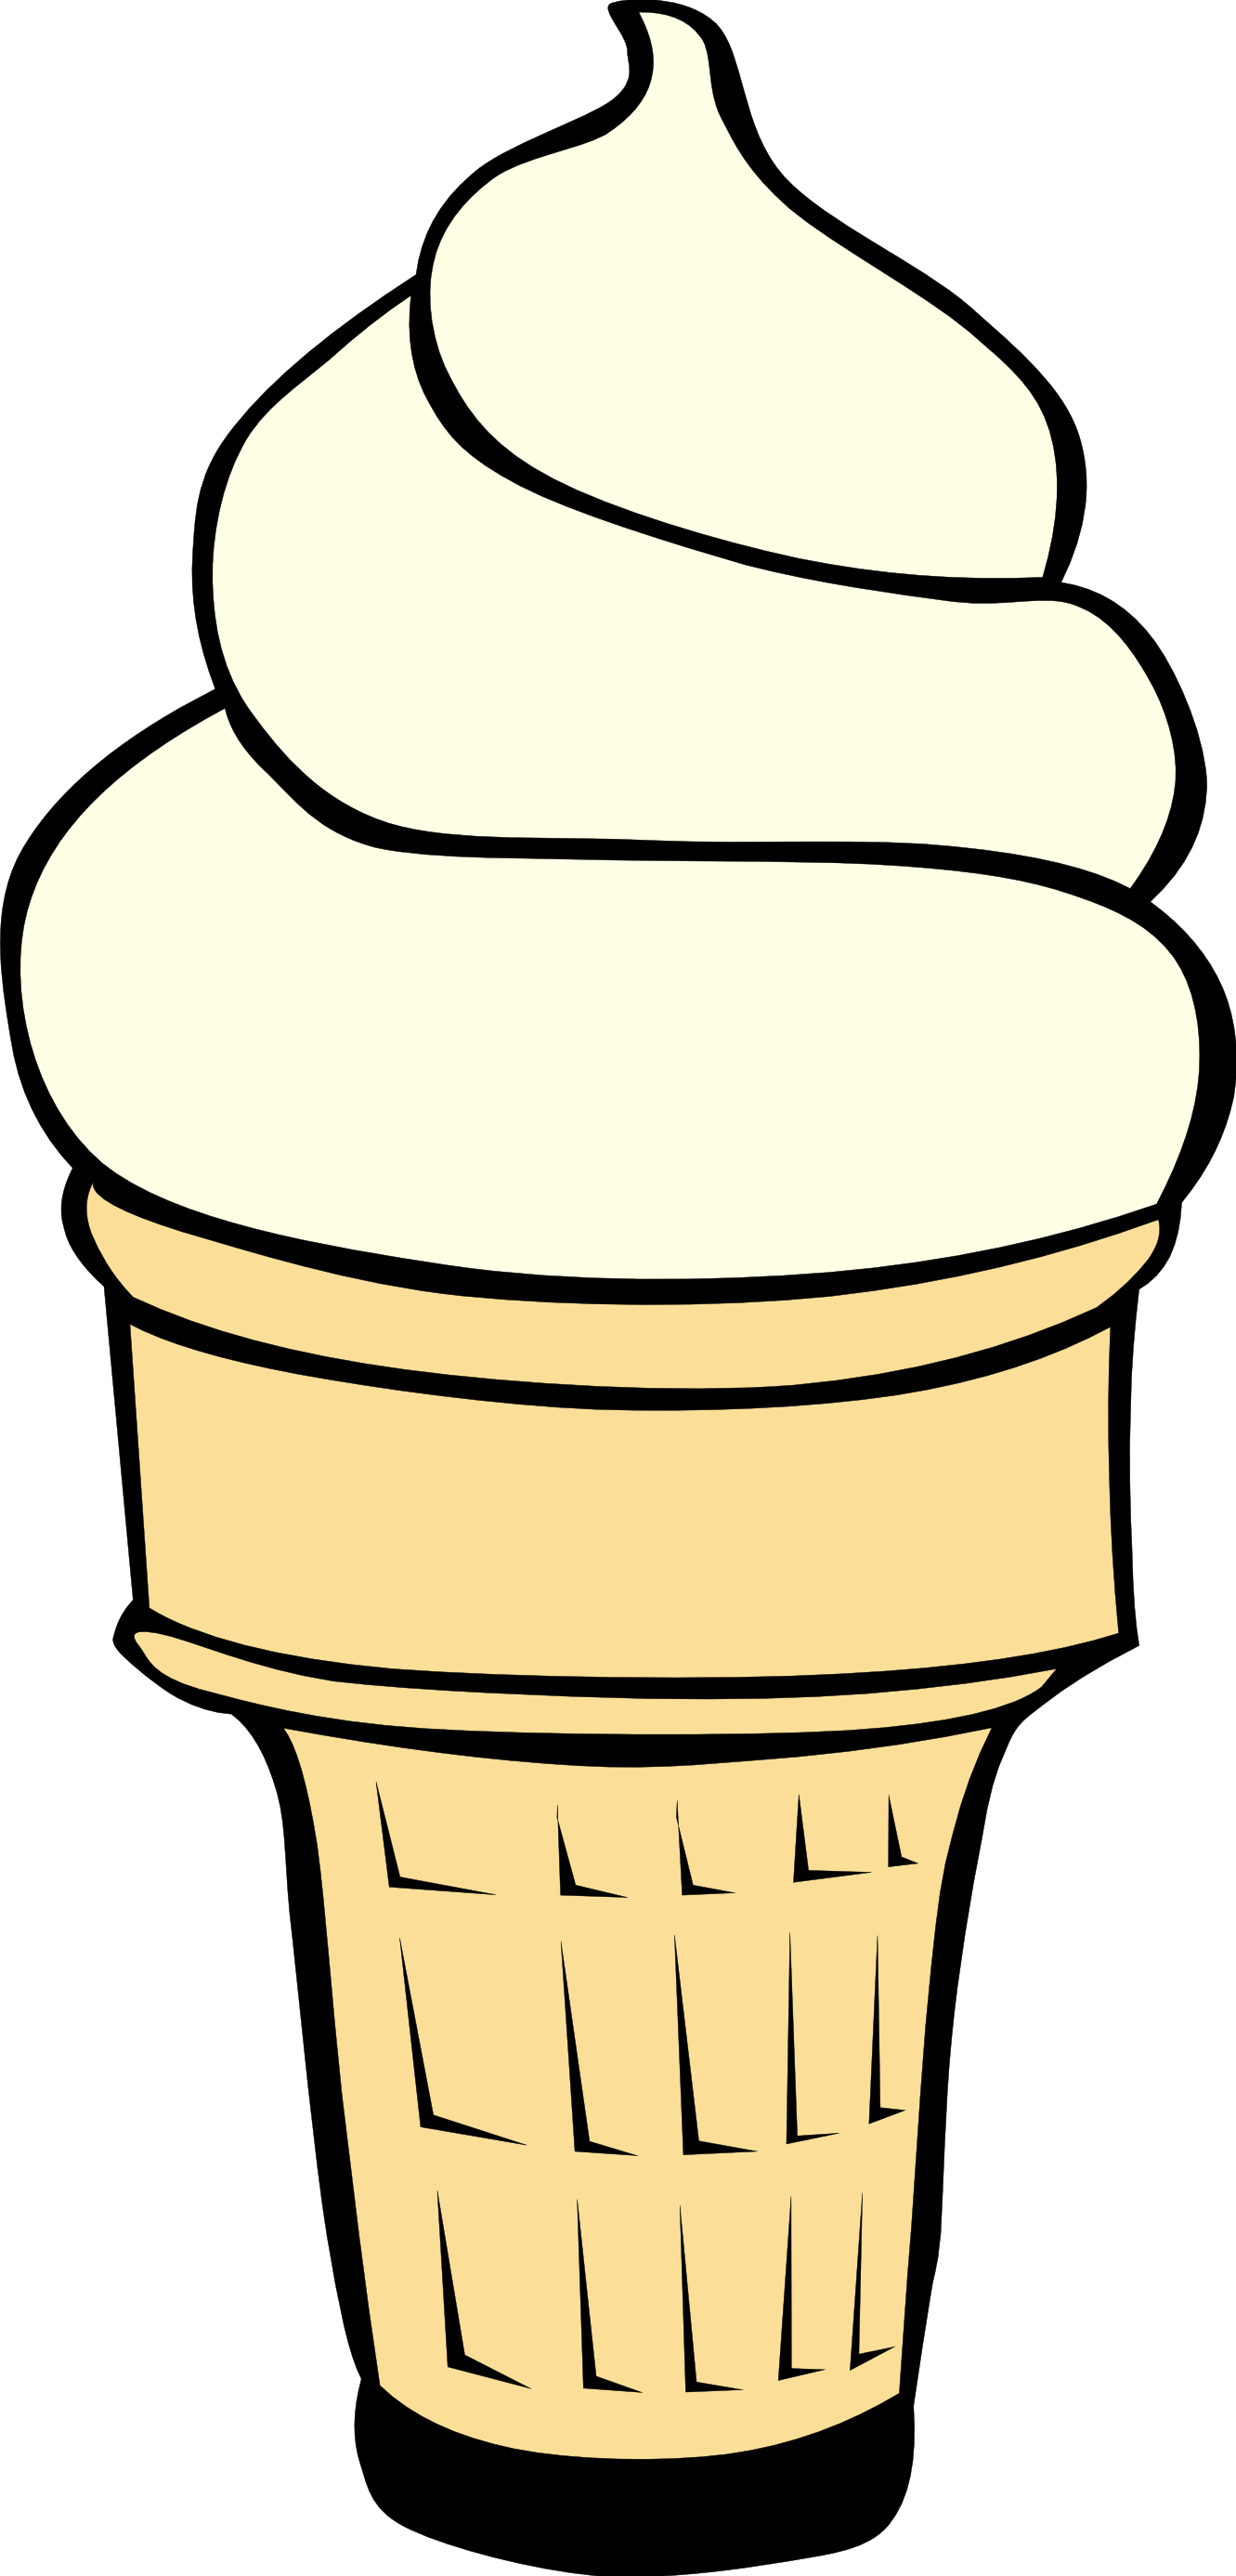 Hyppo popsicle outline png